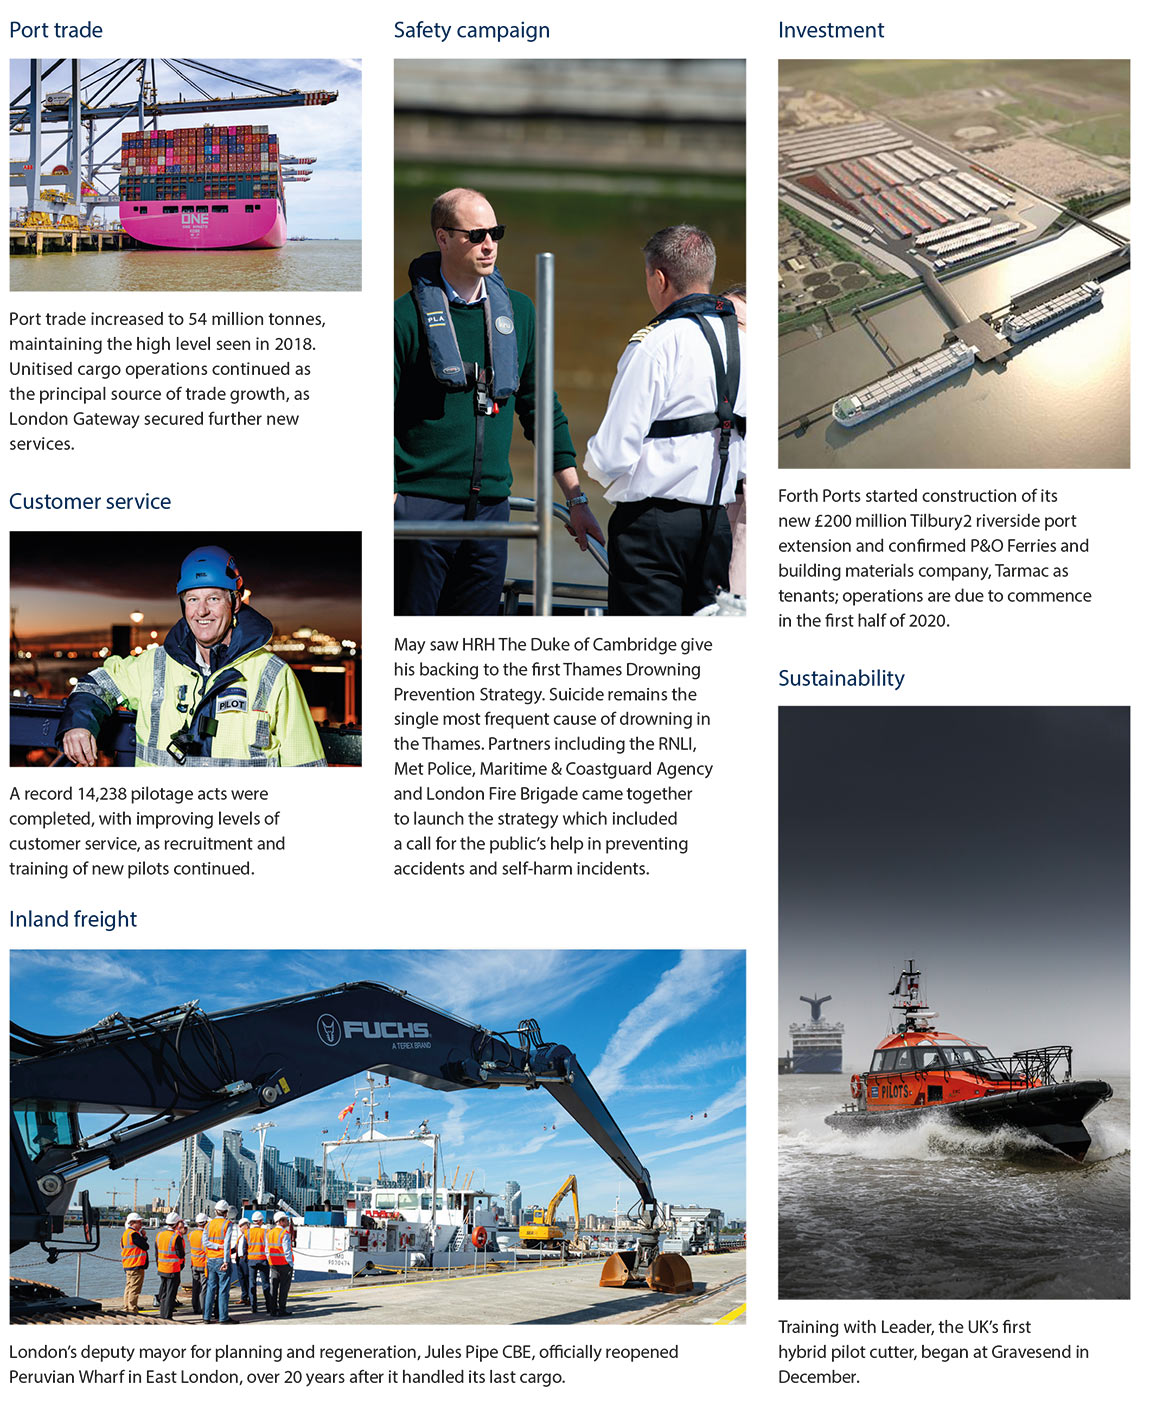 Key 2019 highlights: Our saftey campaign, improved customer service, growing trade and investments